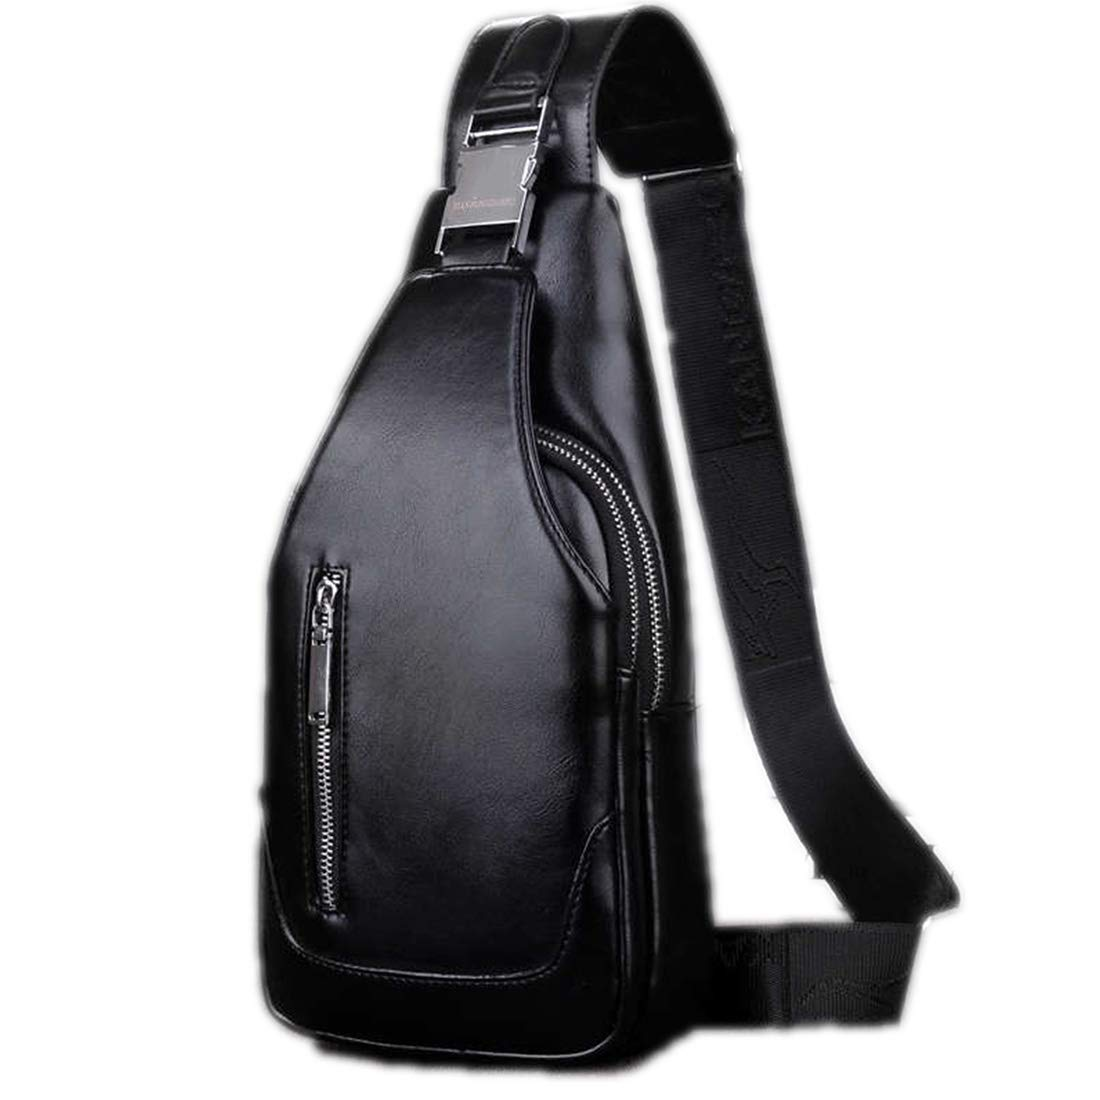 man's bag Men shoulder PU leather Chest Bags Crossbody business Messenger bags Male charging Handbag USB Charge,black NO USB mouth,small size